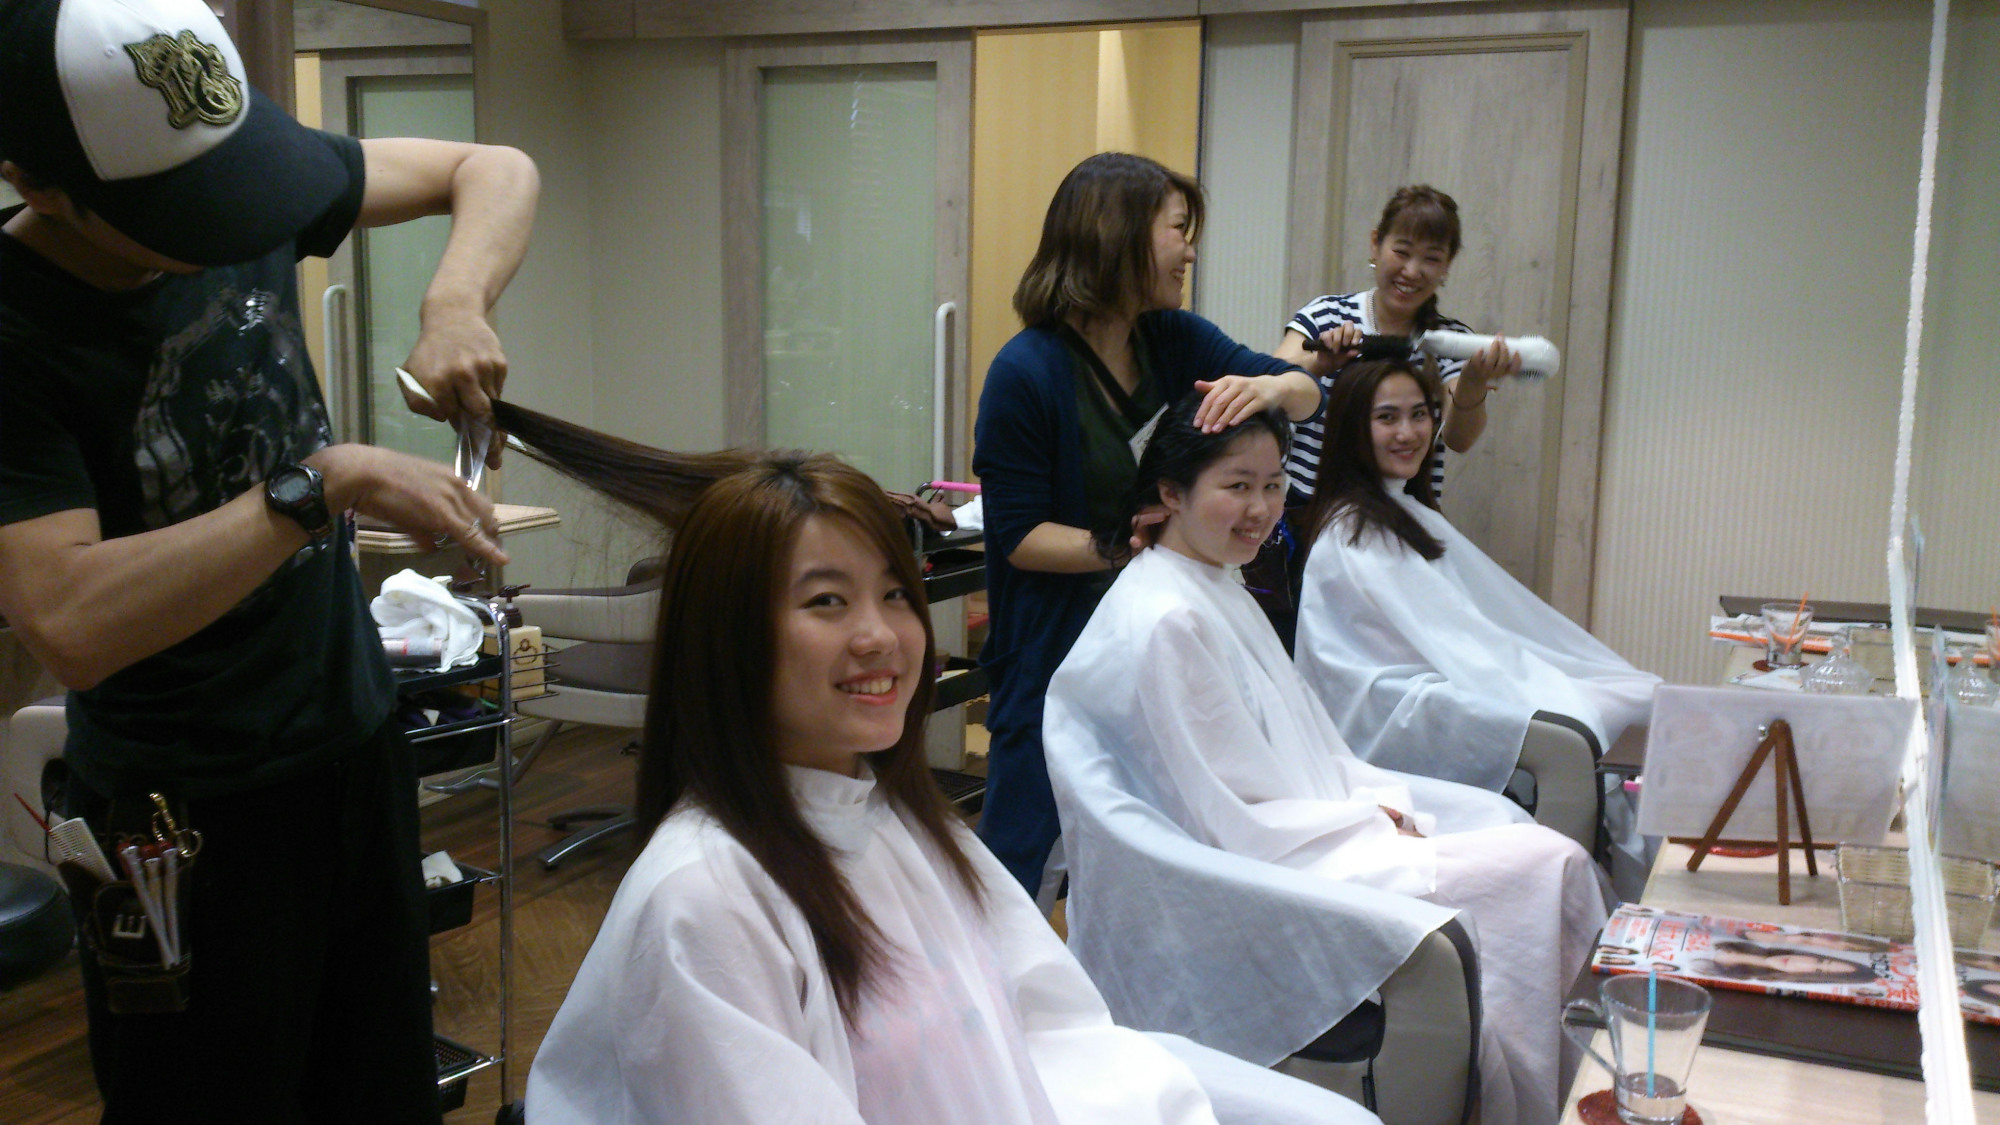 Fashion Beauty Shop Vashi: Japan's Hair Salons Reaching Out To Expats, Tourists And